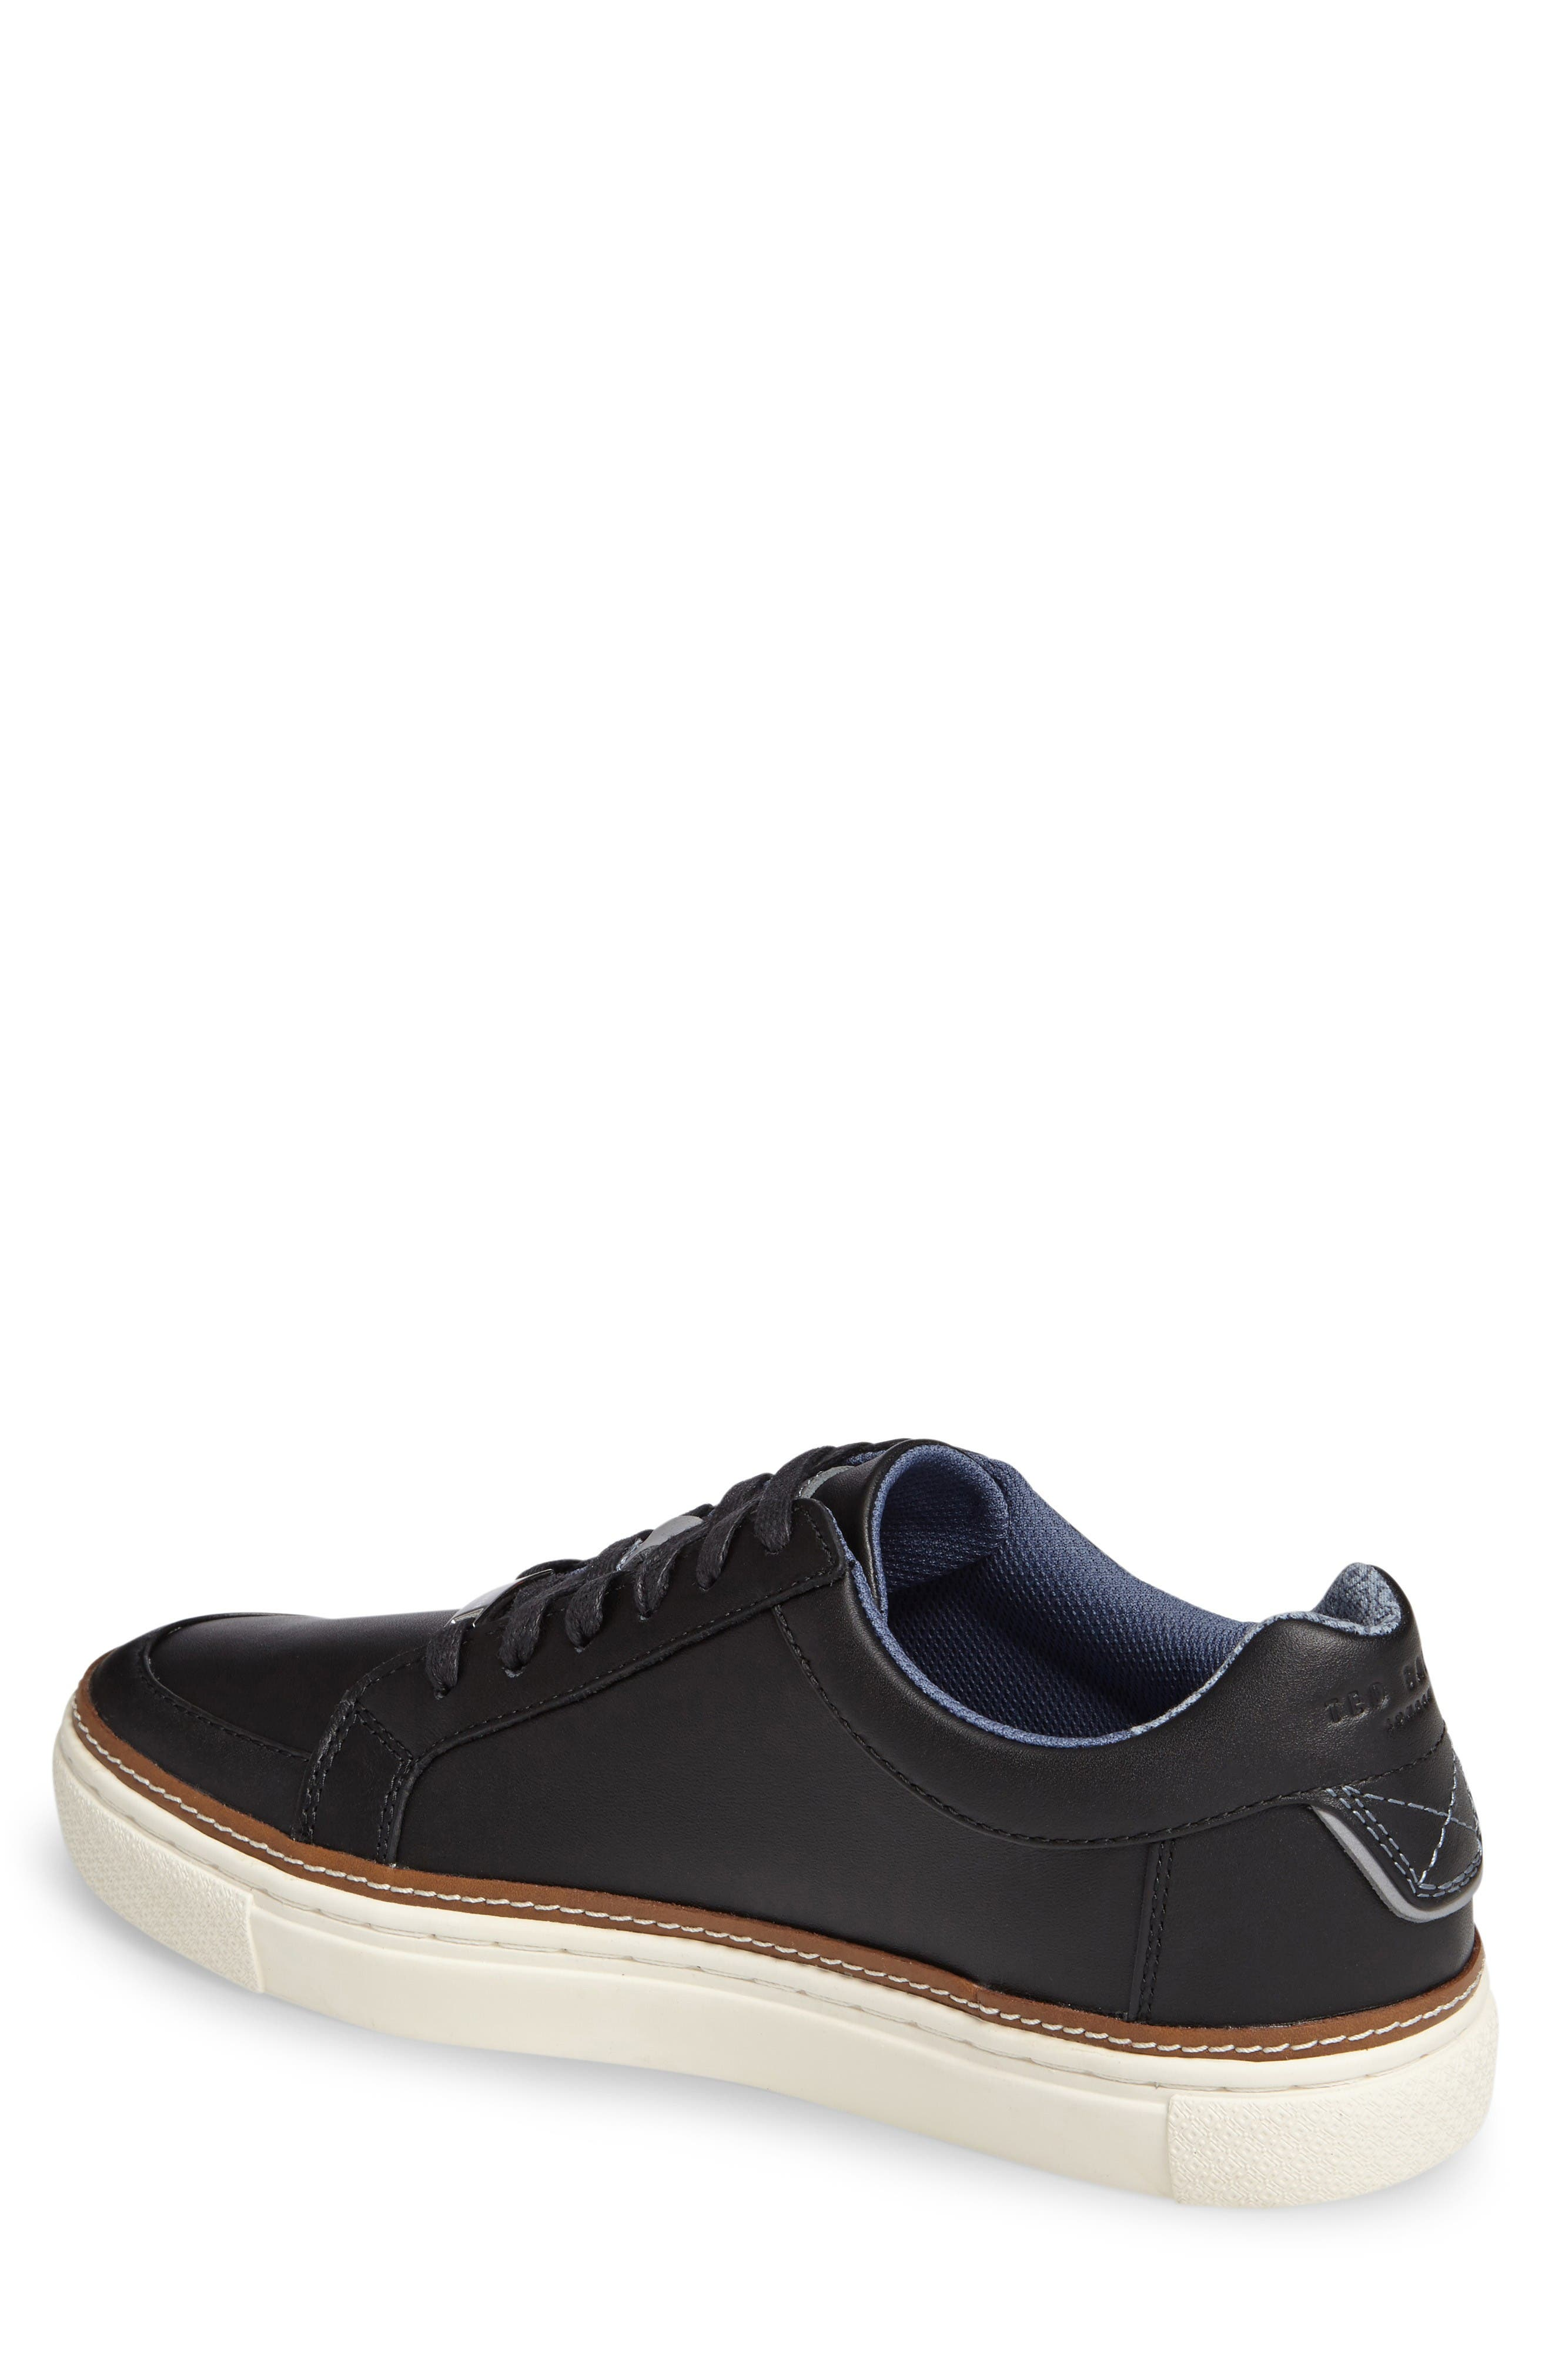 Rouu Sneaker,                             Alternate thumbnail 2, color,                             Black Leather